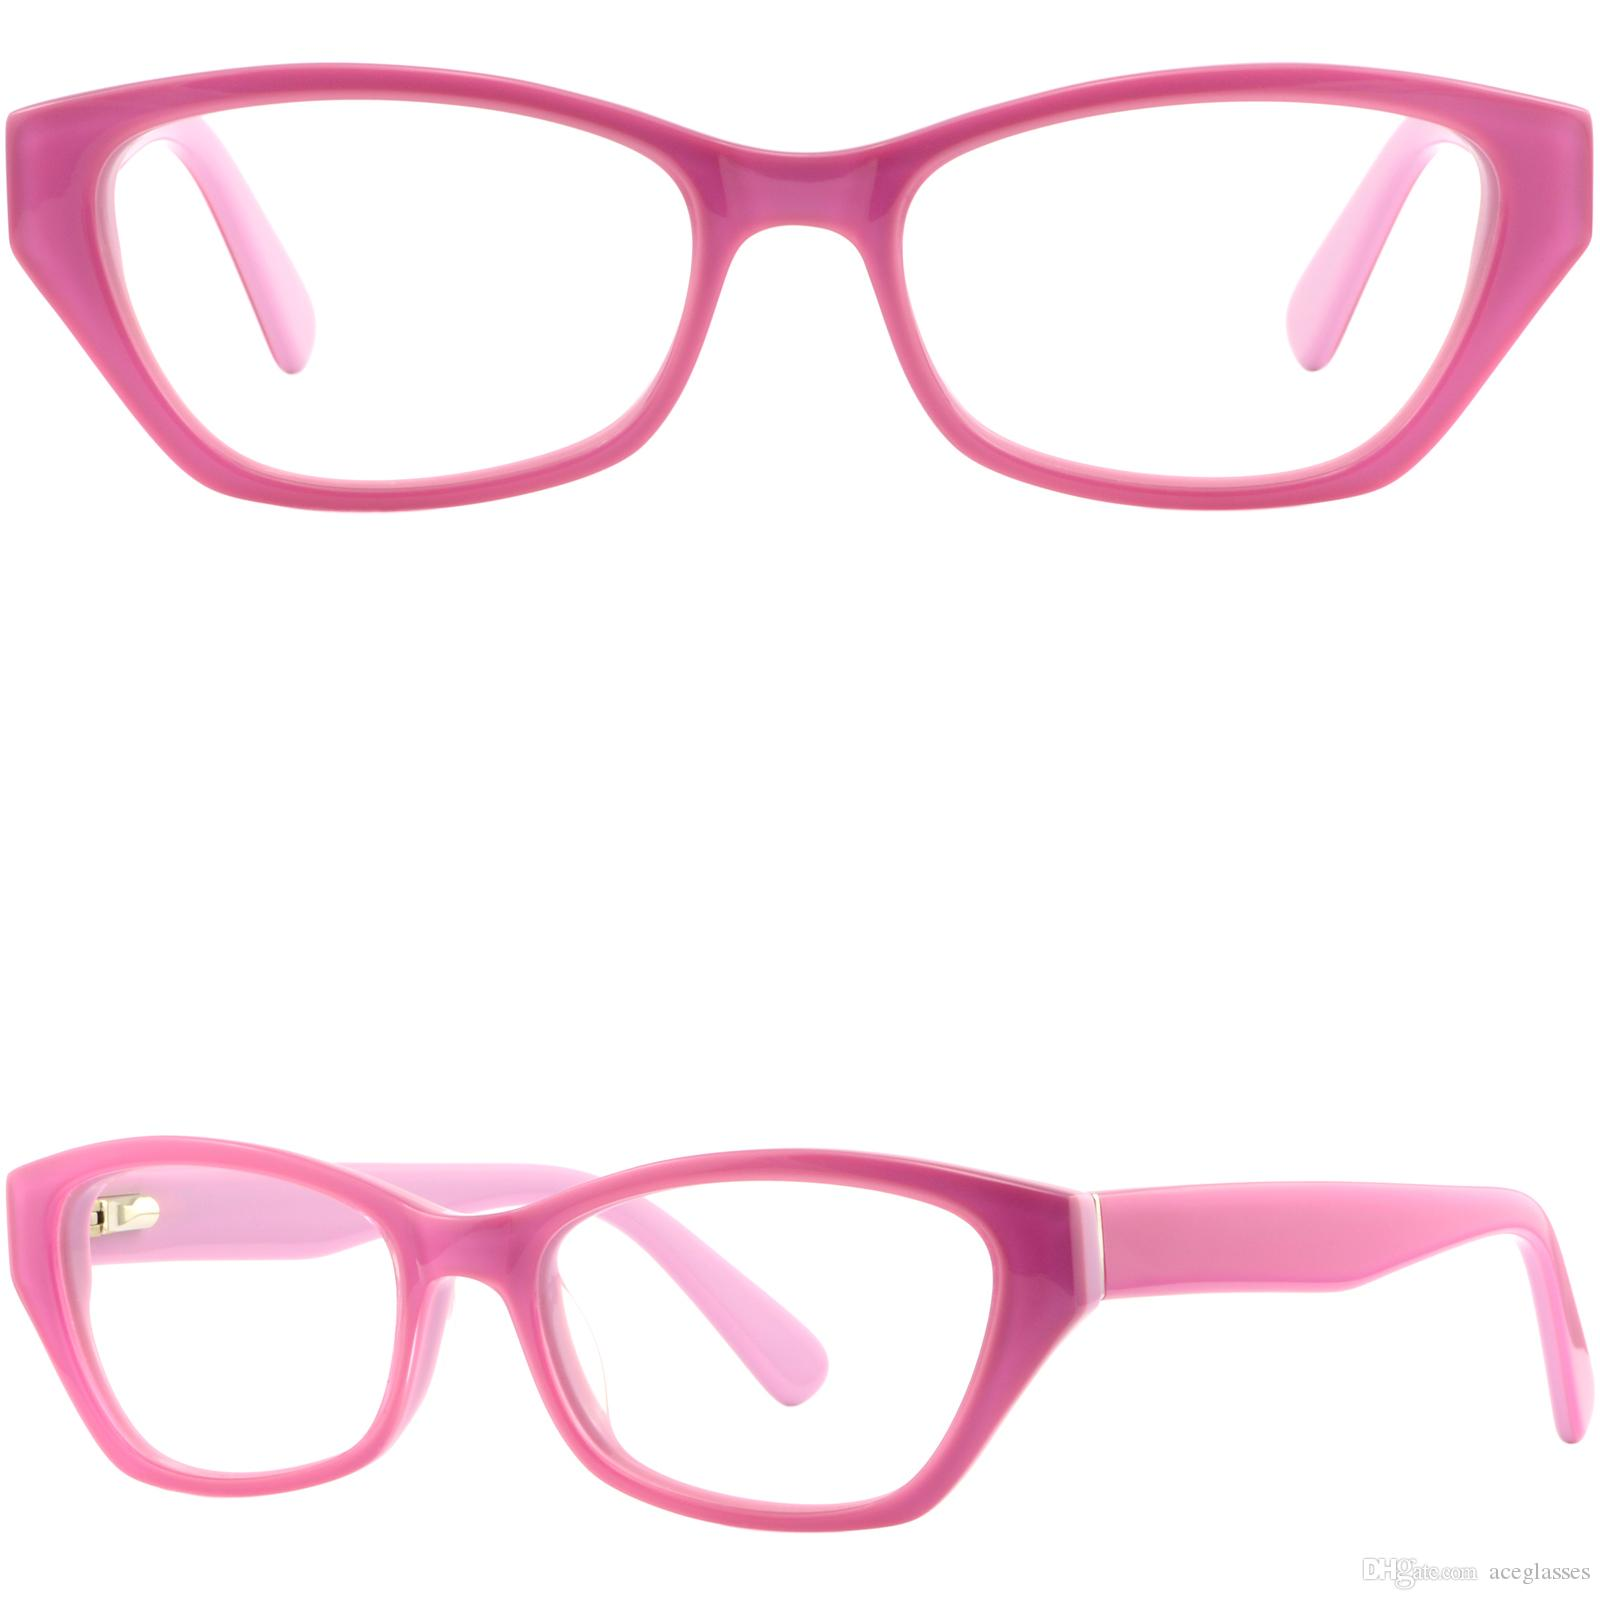 8940c98c9d Cateye Women s Acetate Plastic Frames Prescription Eyeglasses Pink ...